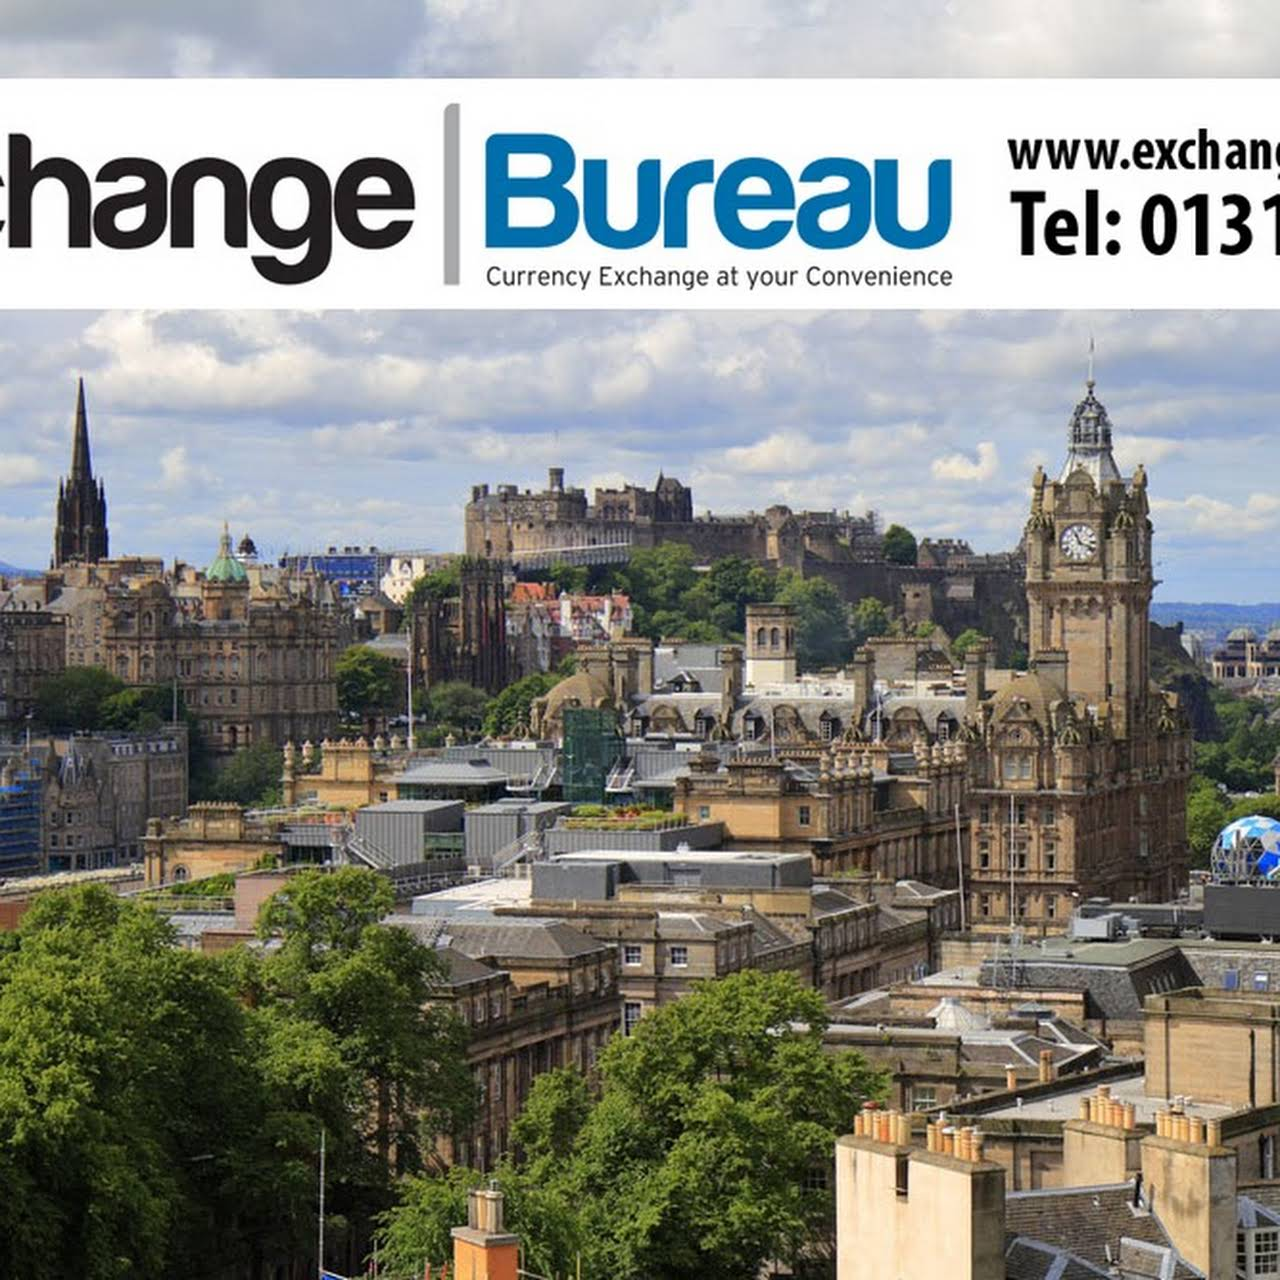 Get Fantastic Currency Exchange Rates For Euros In Edinburgh Posted On Jul 11 2018